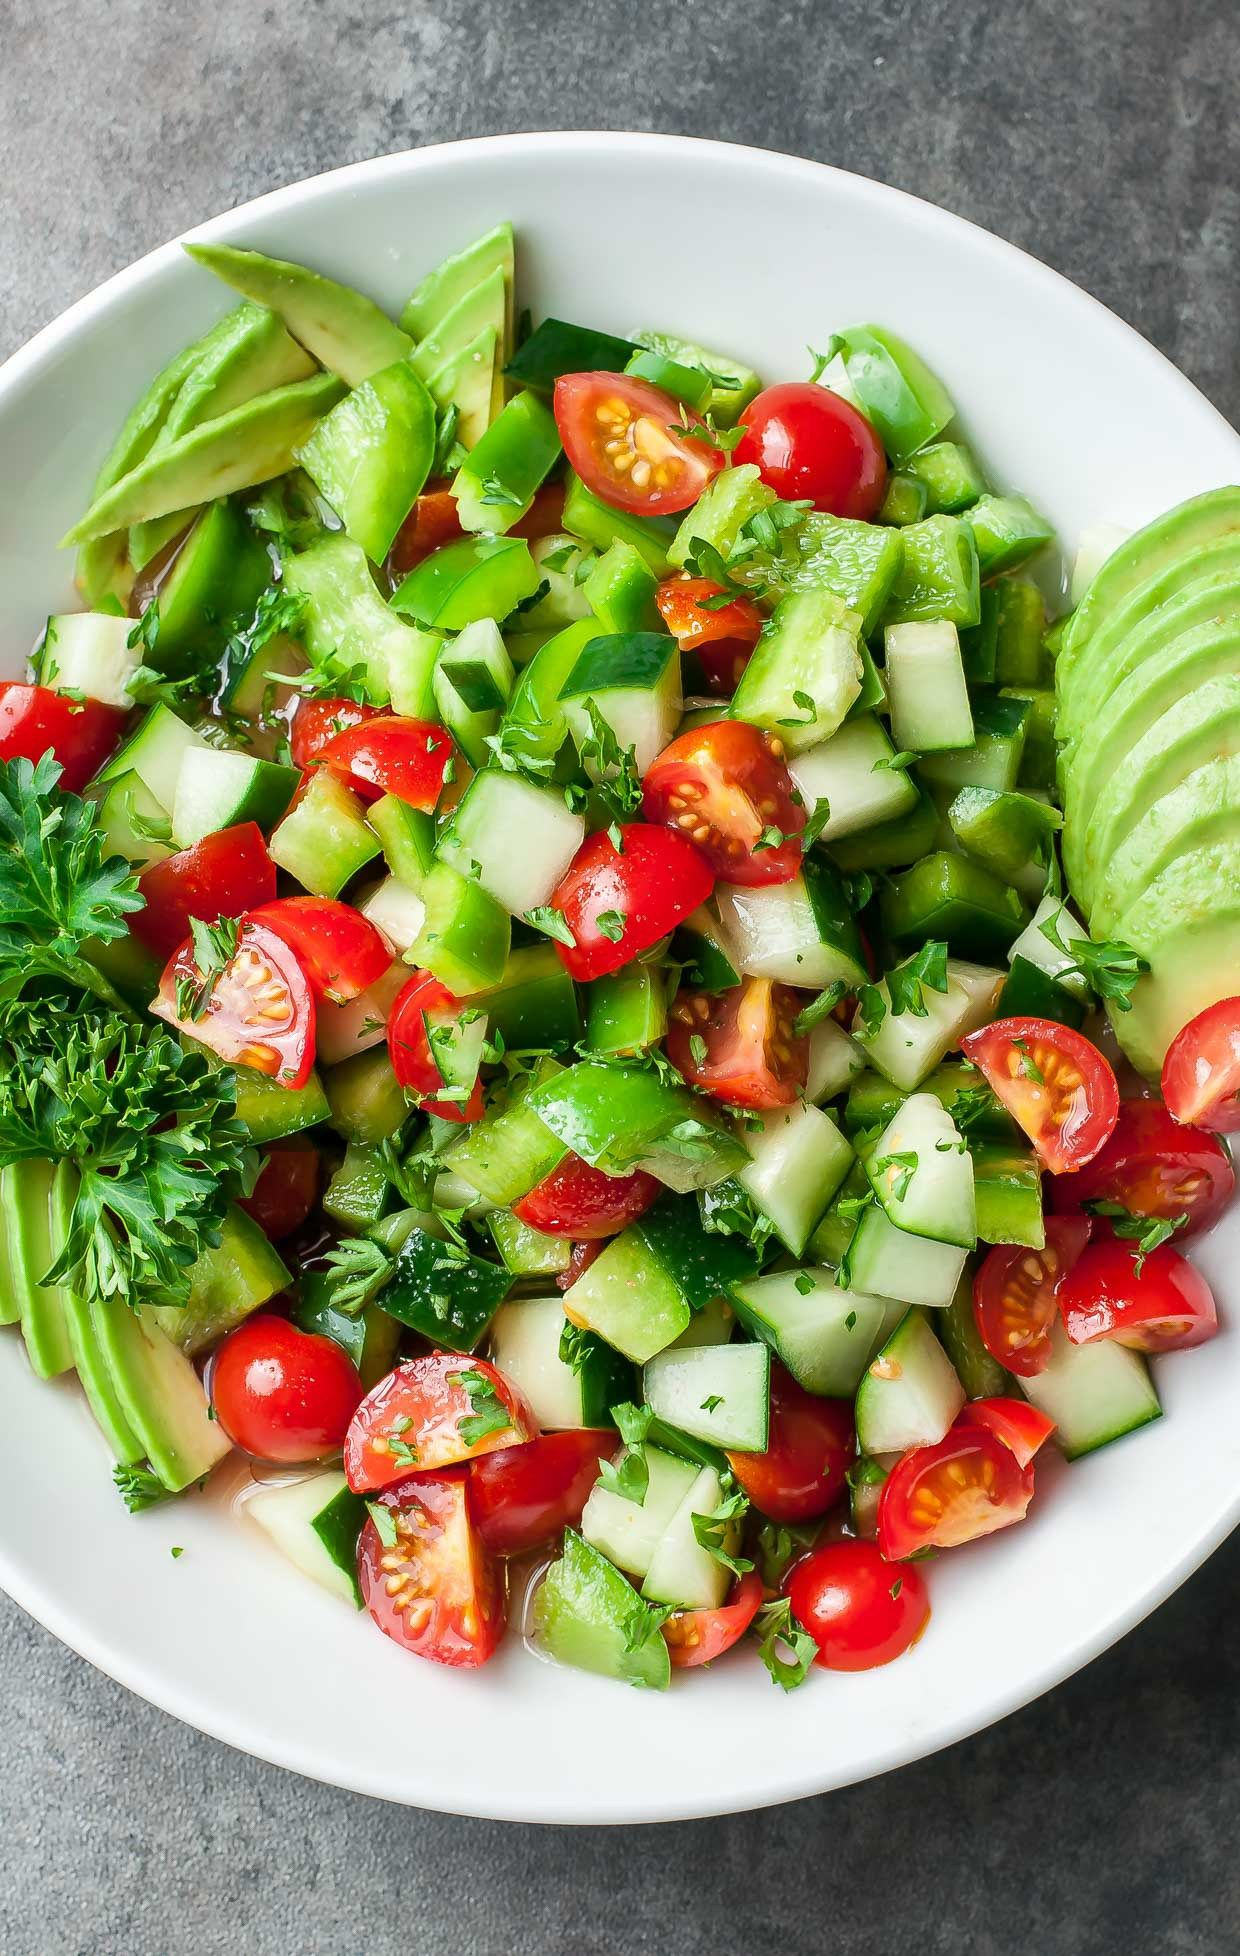 Tomato Cucumber Salad Recipe With Images Healthy Salad